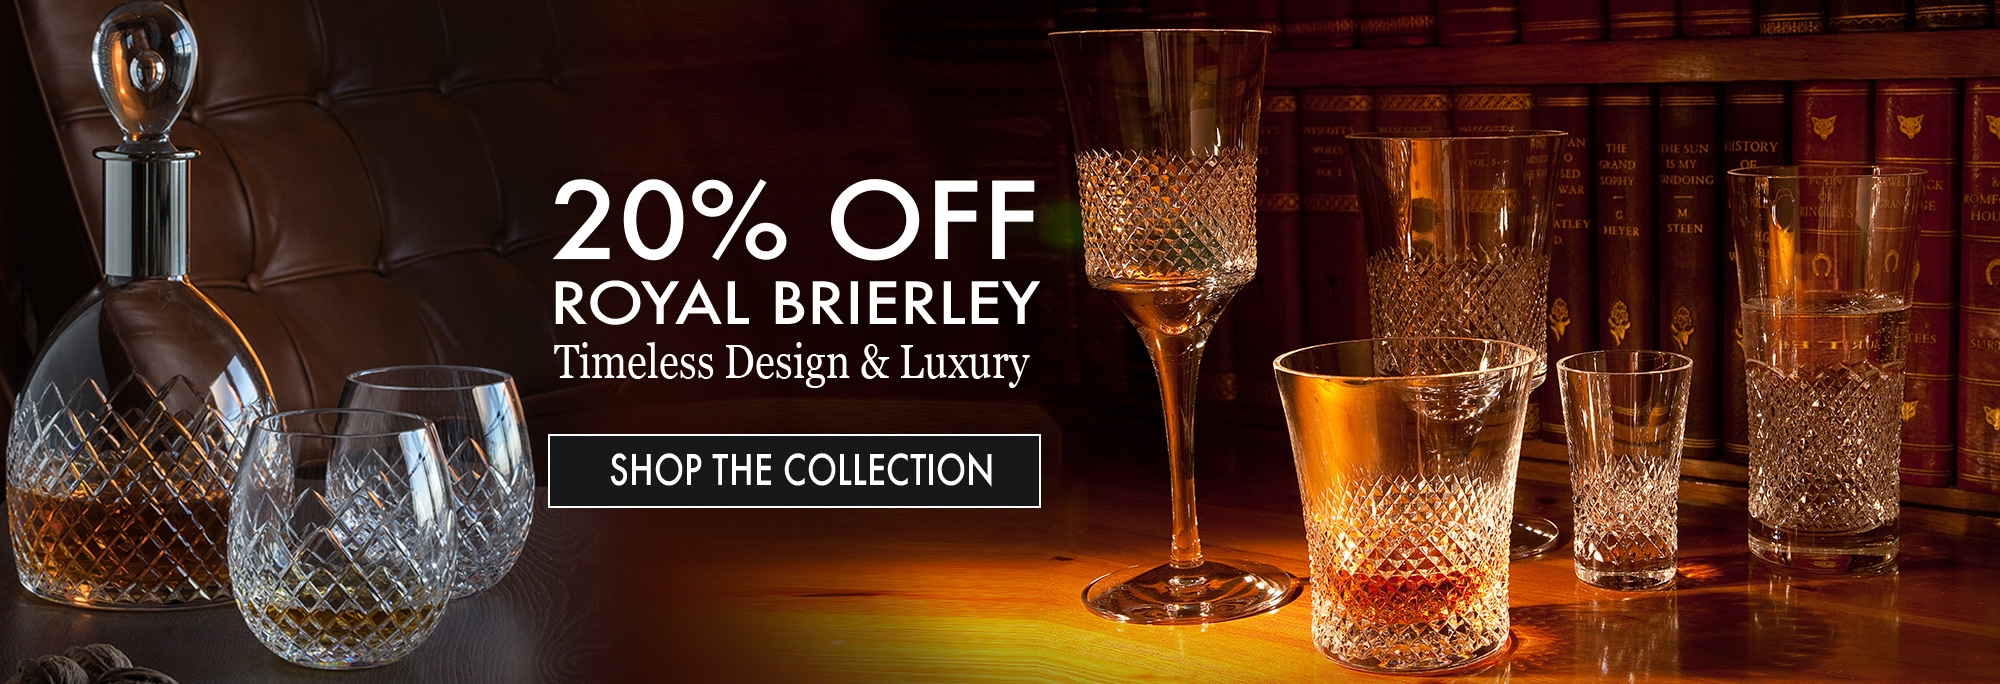 Save 20% on Royal Brierley